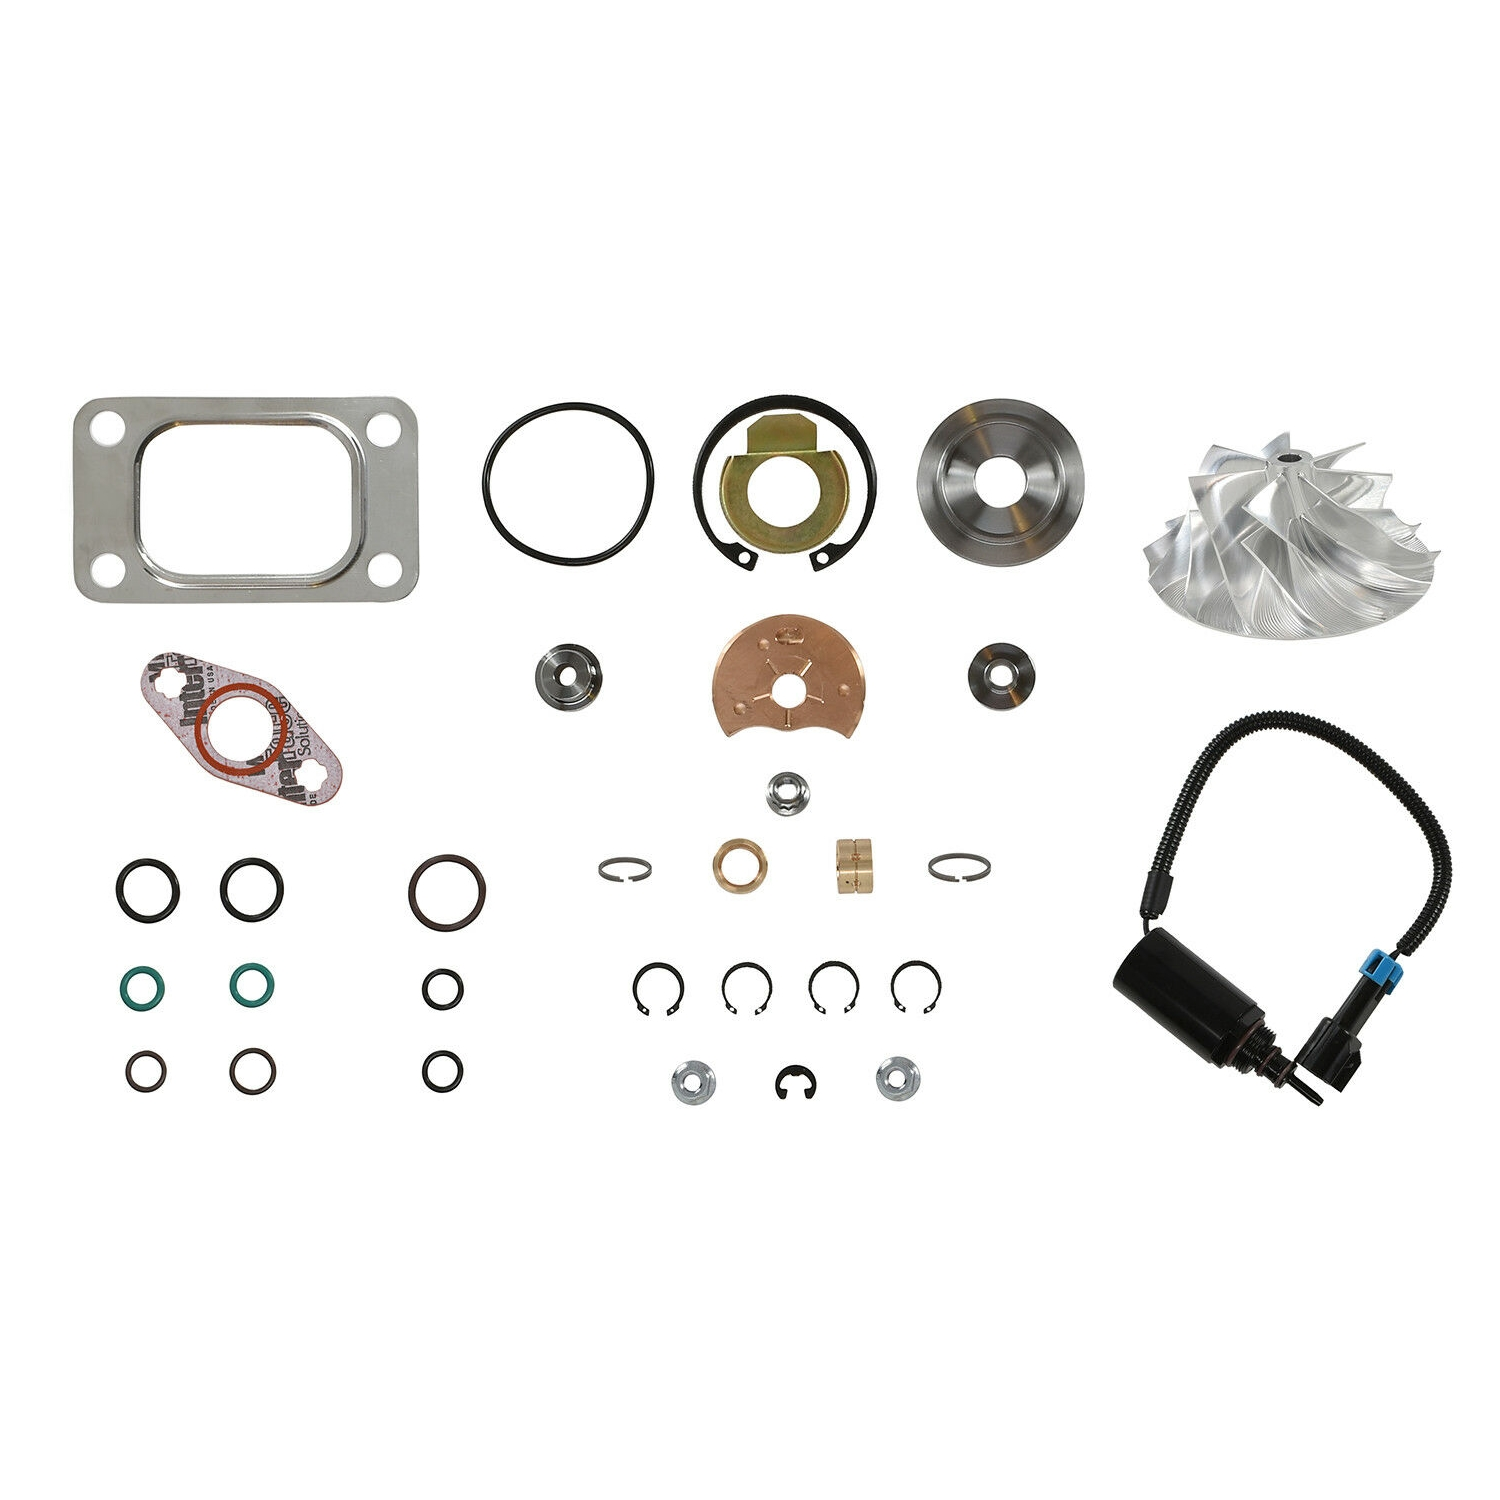 HE351CW Turbo Rebuild Kit Billet Wheel Wastegate Solenoid For 04.5-07 5.9L ISB Dodge Ram Cummins Diesel